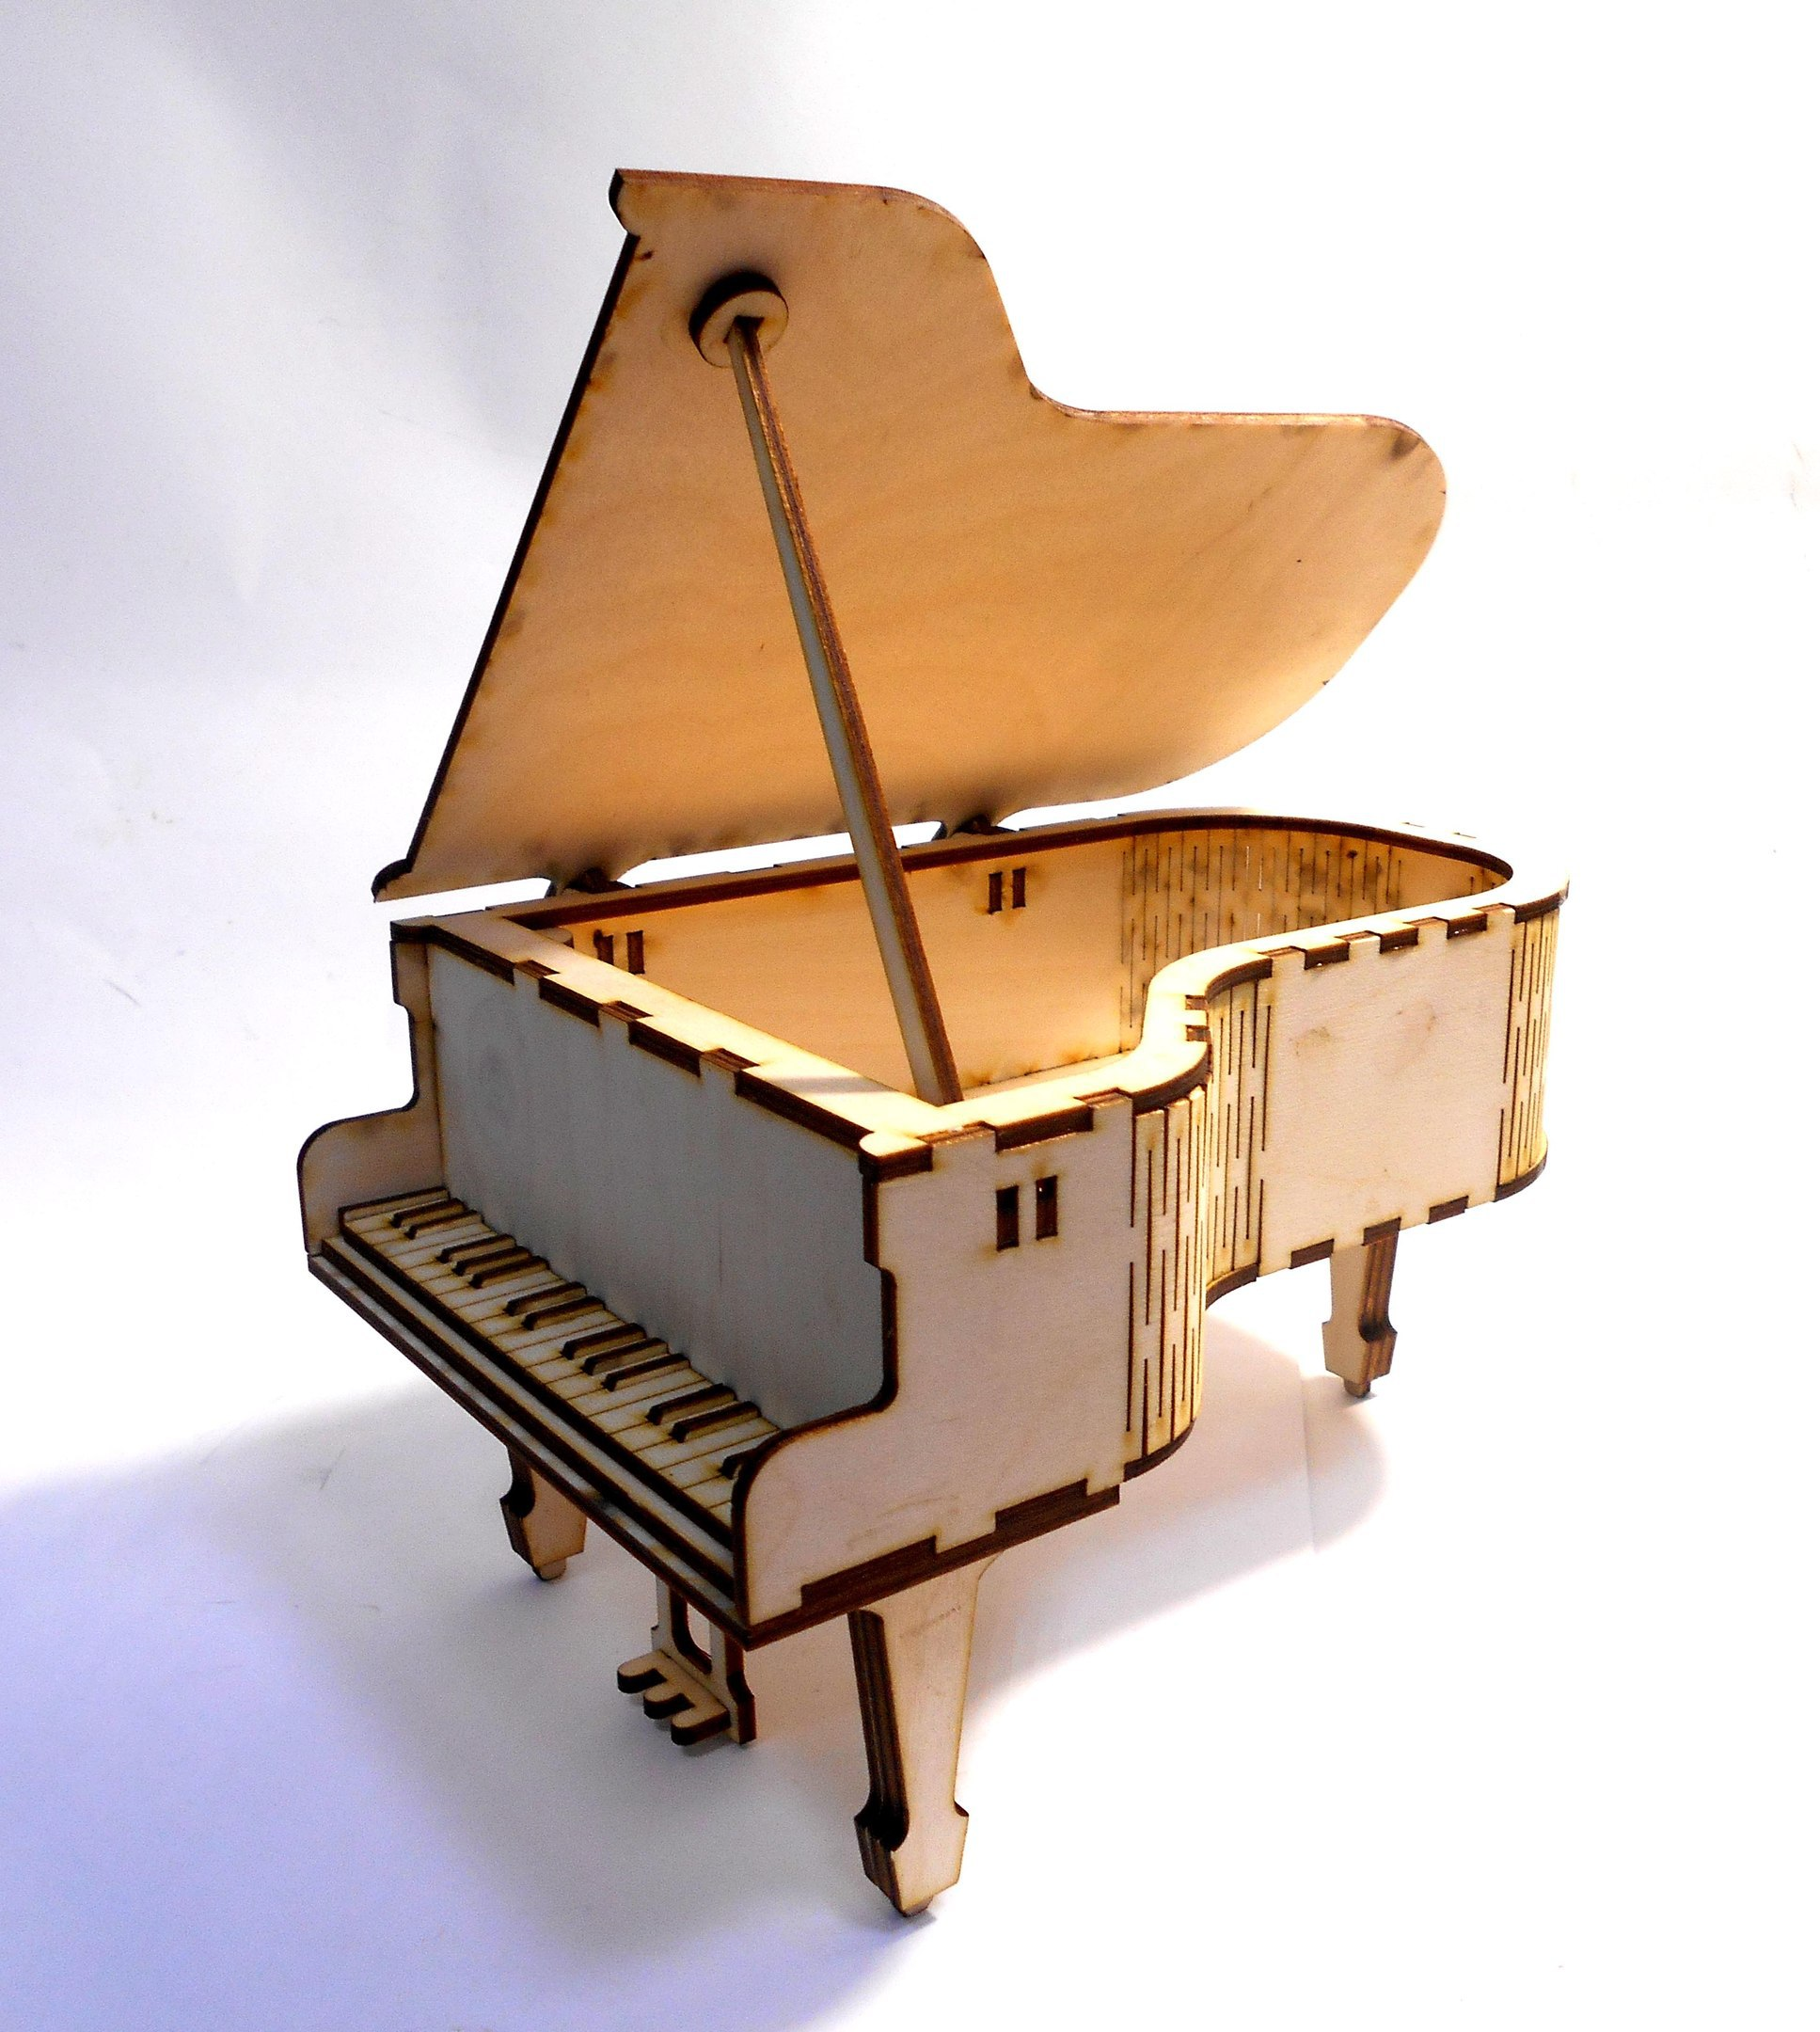 Piano Free Vector Cdr Download 3axis Co